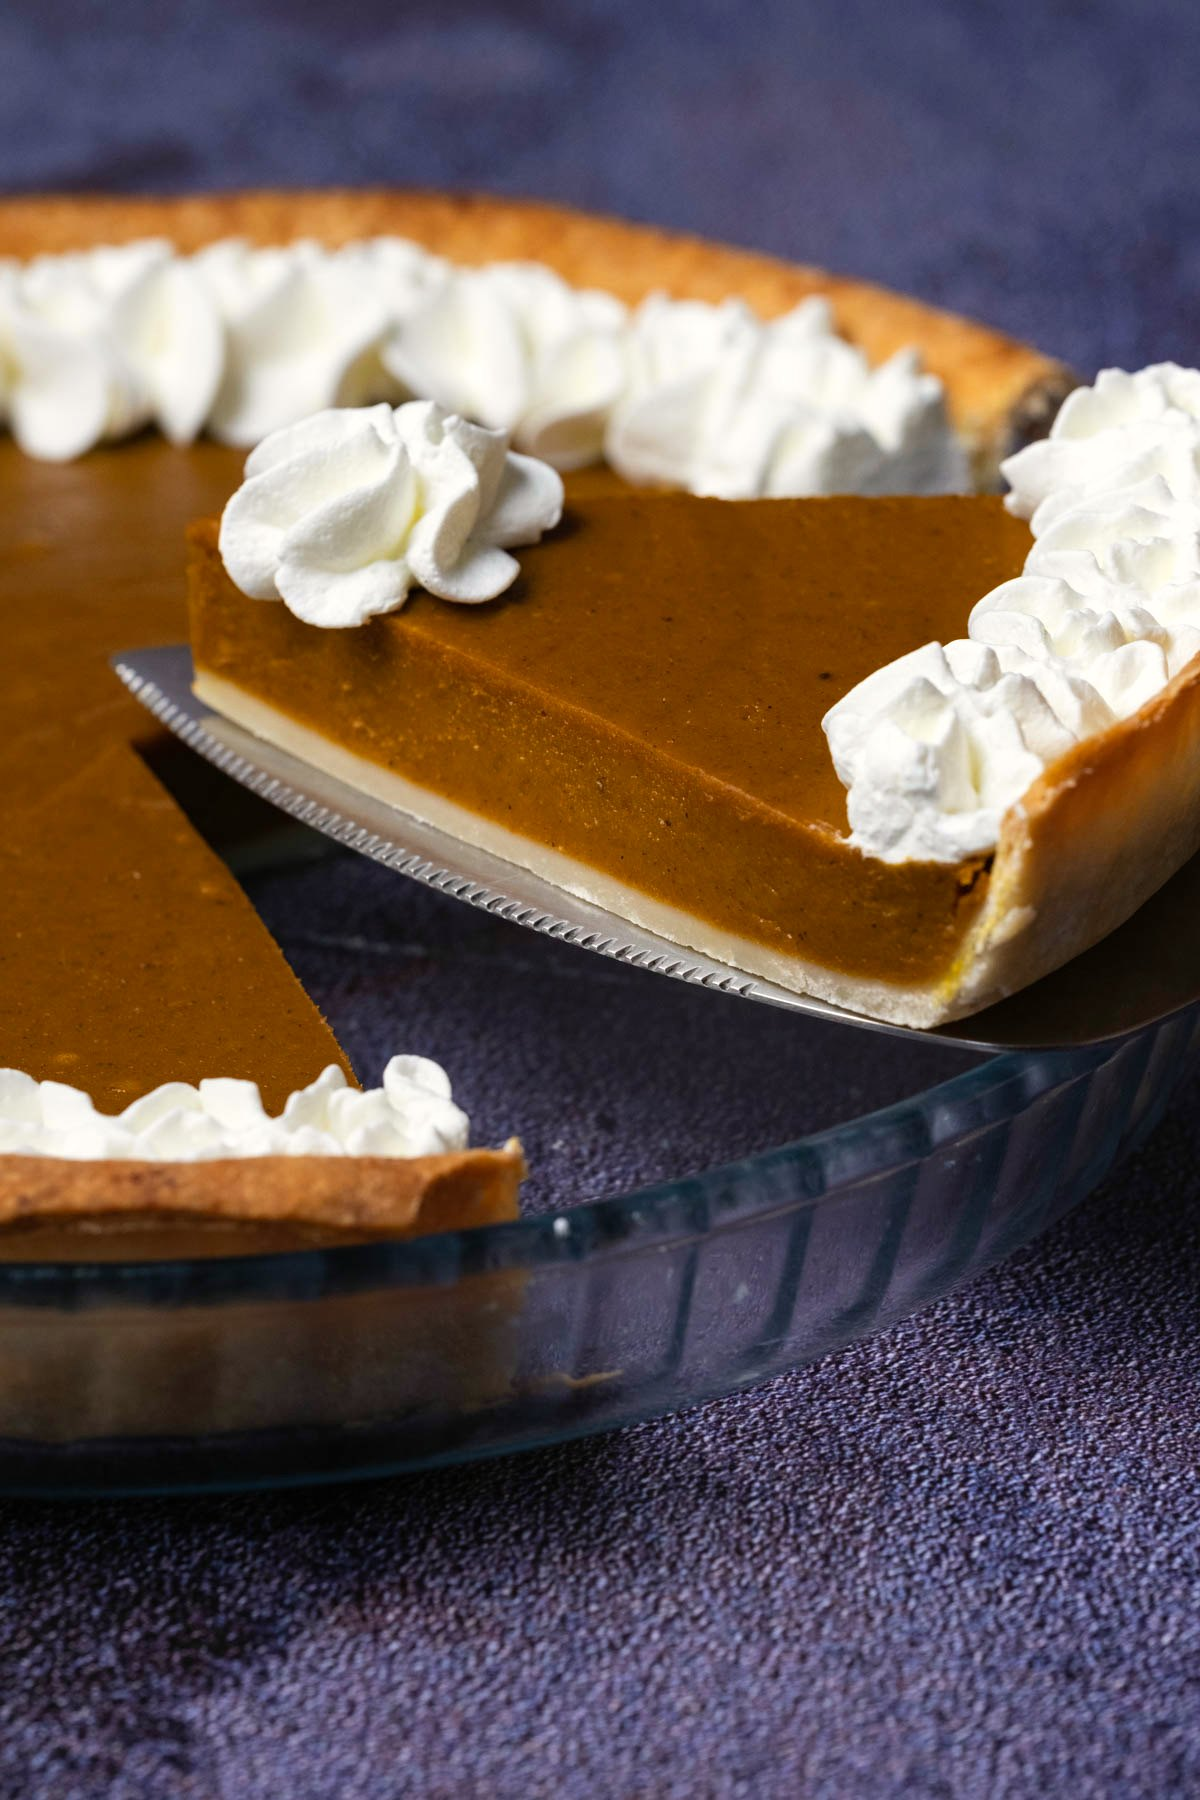 A slice of pumpkin pie lifting out of a pie dish.